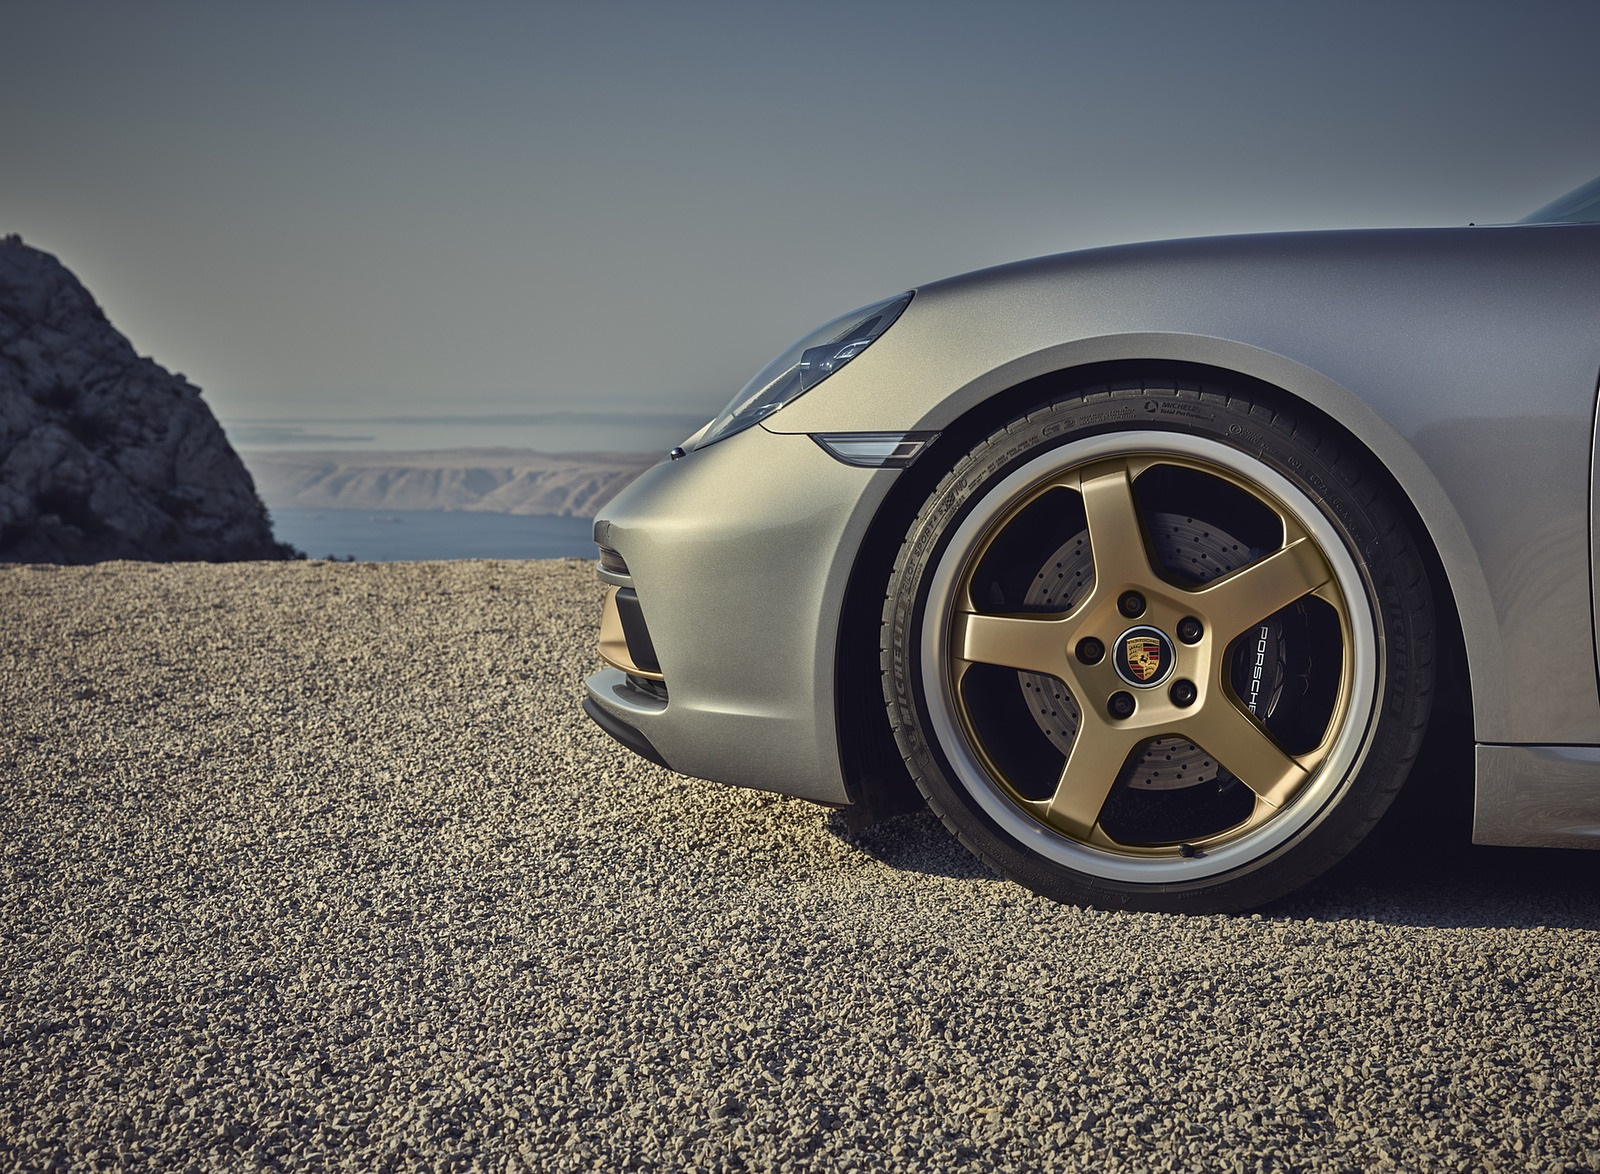 2021 Porsche 718 Boxster GTS 4.0 25 years Wheel Wallpapers (7)